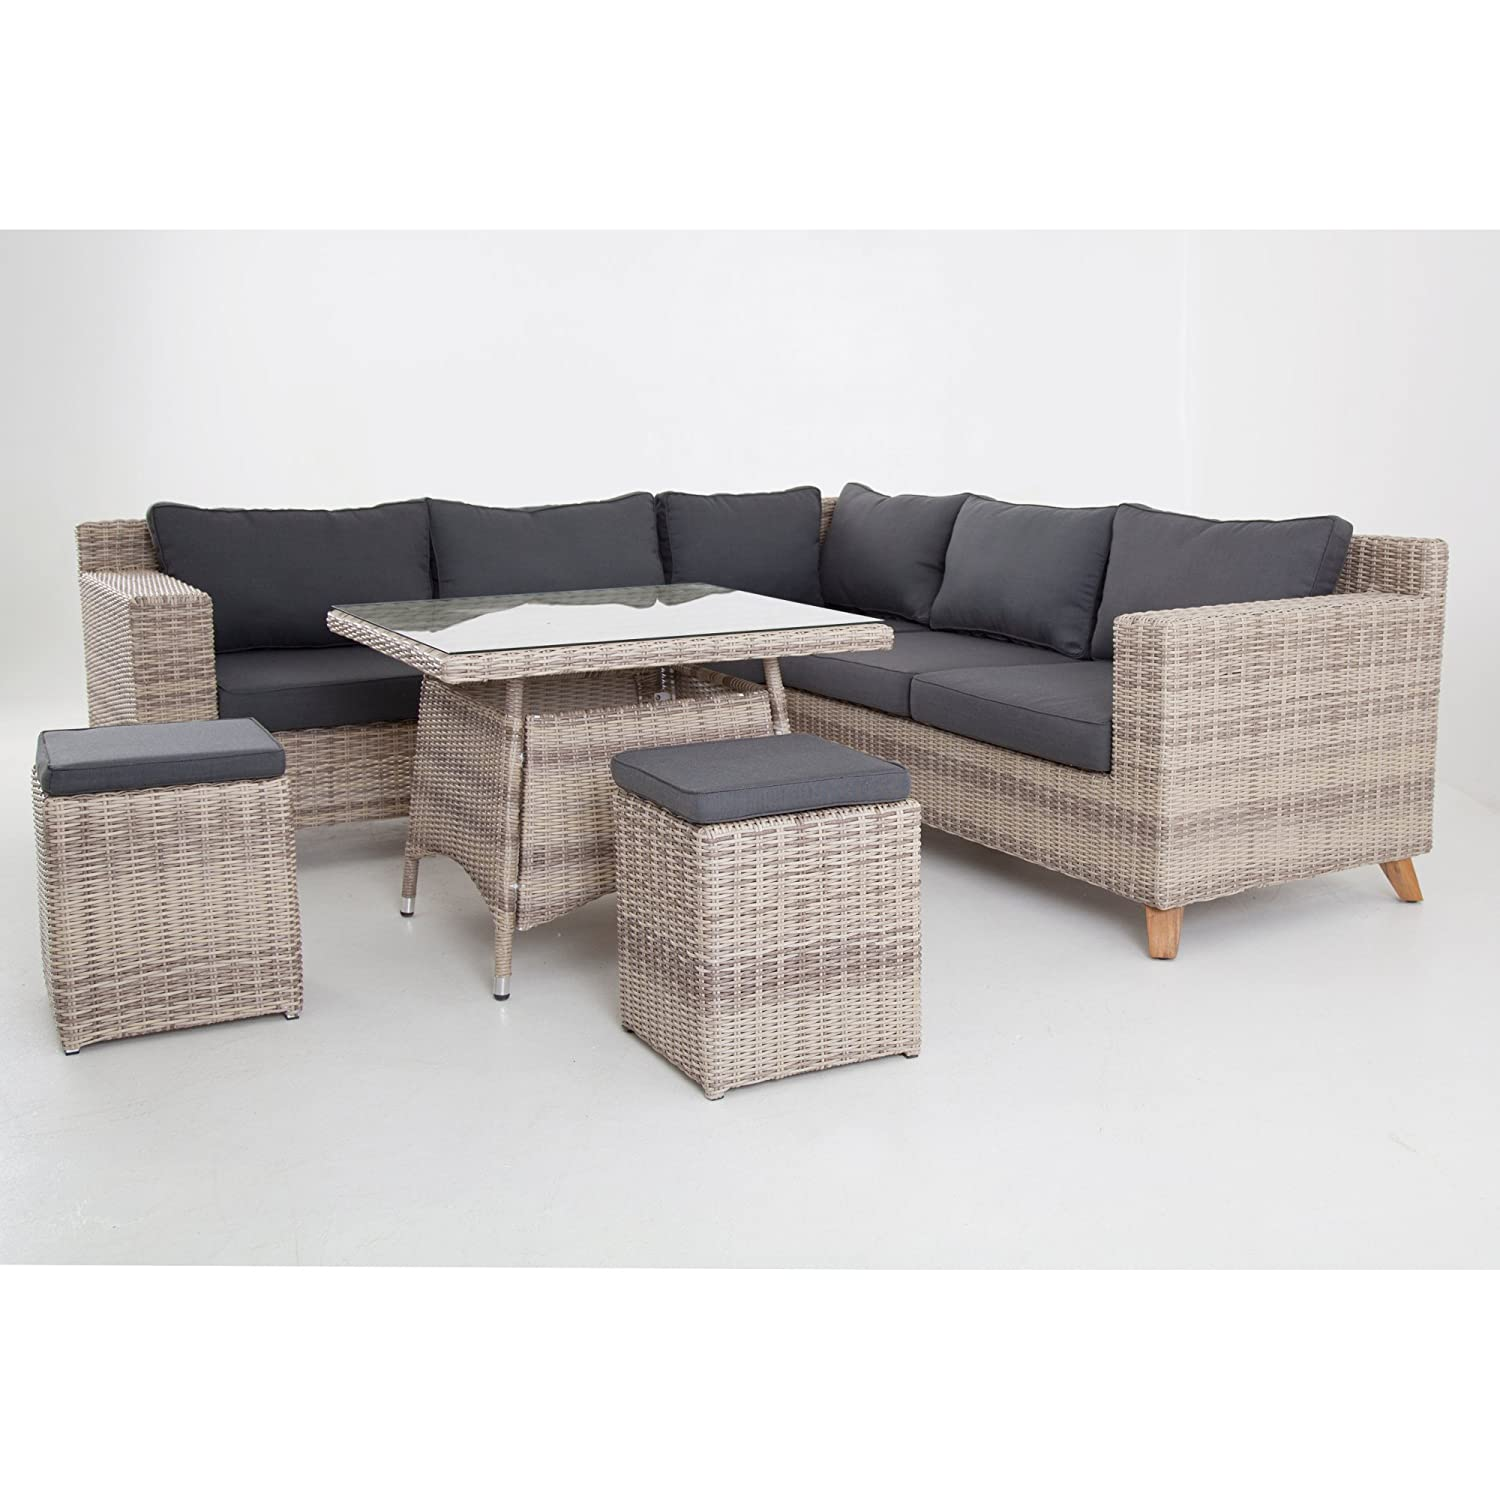 ecksofa garten wonderful loungemobel rattan garten outside tisch y loungem c bbel rattanset. Black Bedroom Furniture Sets. Home Design Ideas